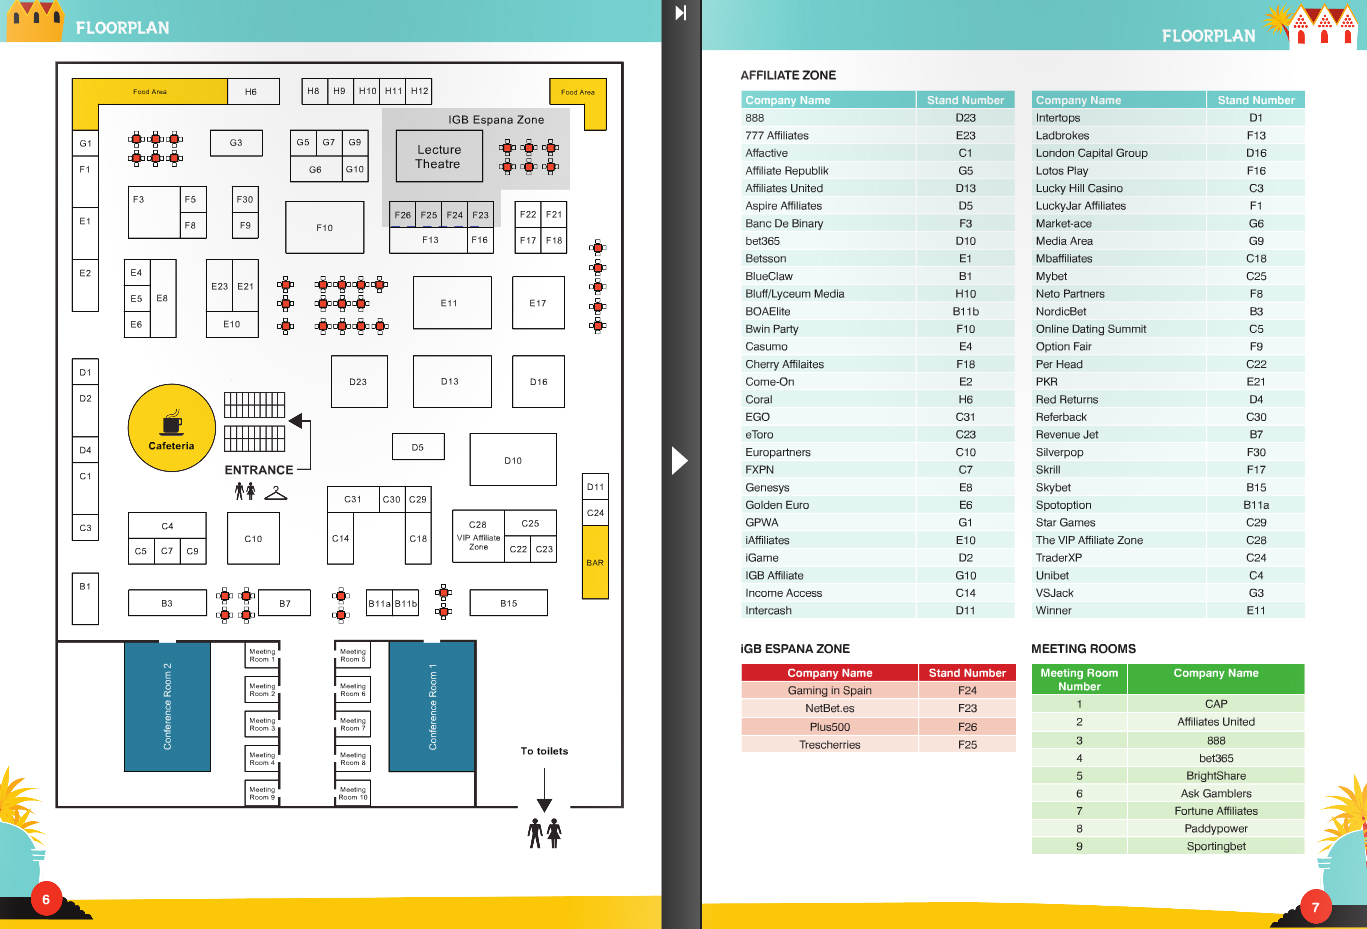 Barcelona Affiliate Conference 2012, iGB Espana Floor Plan